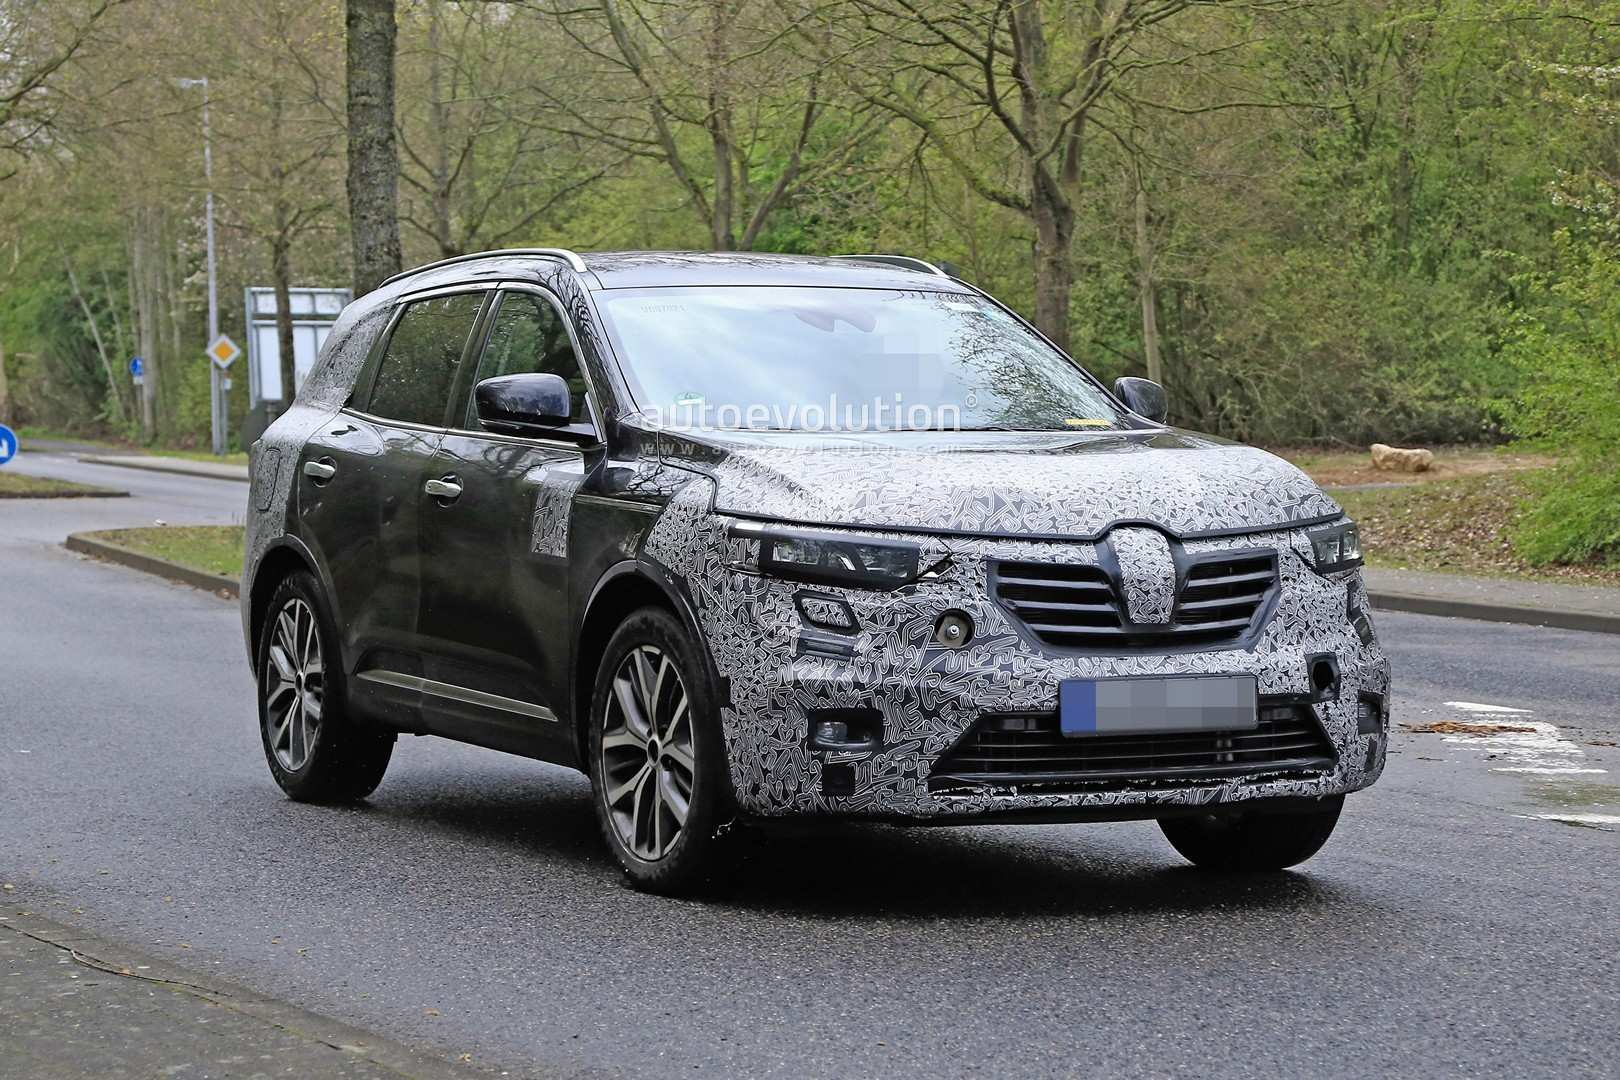 29 All New 2020 Renault Megane SUV Research New